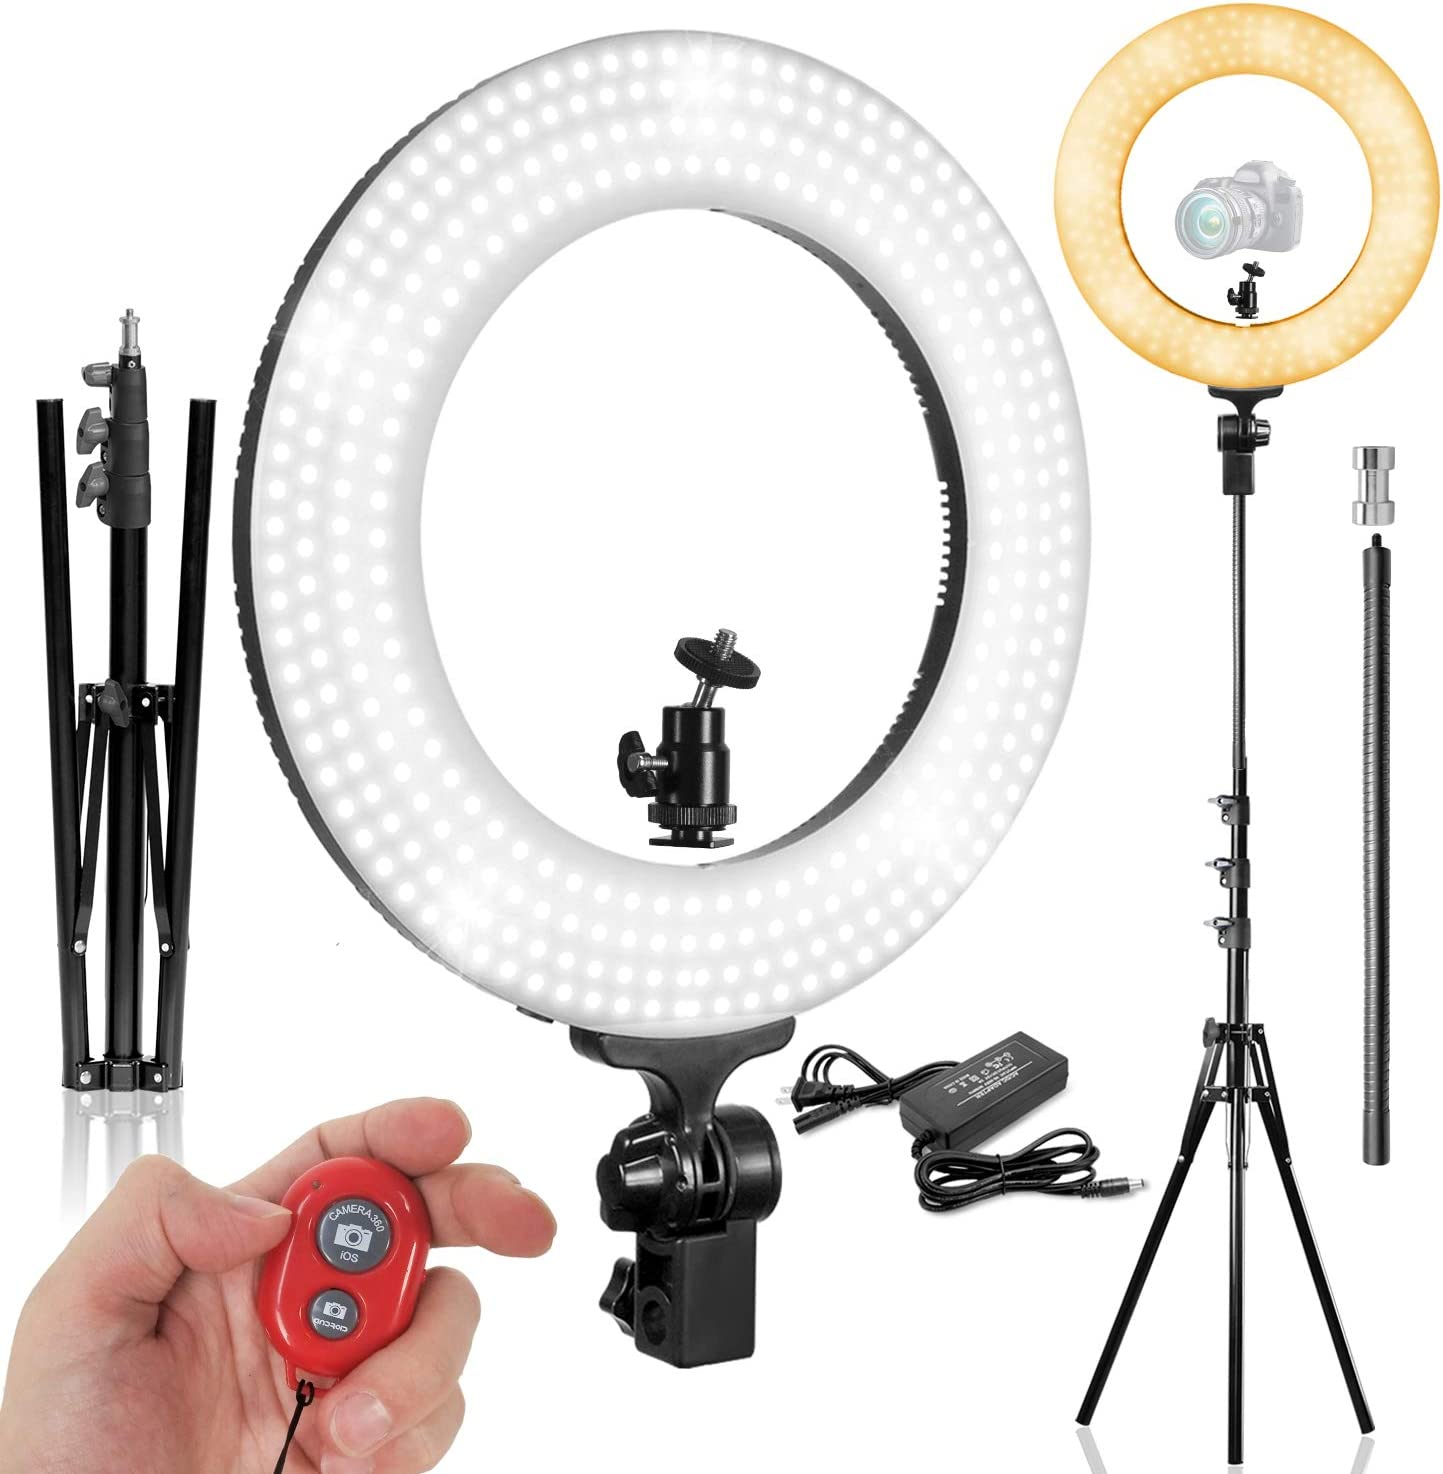 1//4 Hot Shoe Mount Adapter PROMOAGG2820/_V2 LimoStudio 14 LED Dual Color Dimmable Continuous Lighting for Beauty Facial Shoot with Bluetooth Remote Camera Shutter